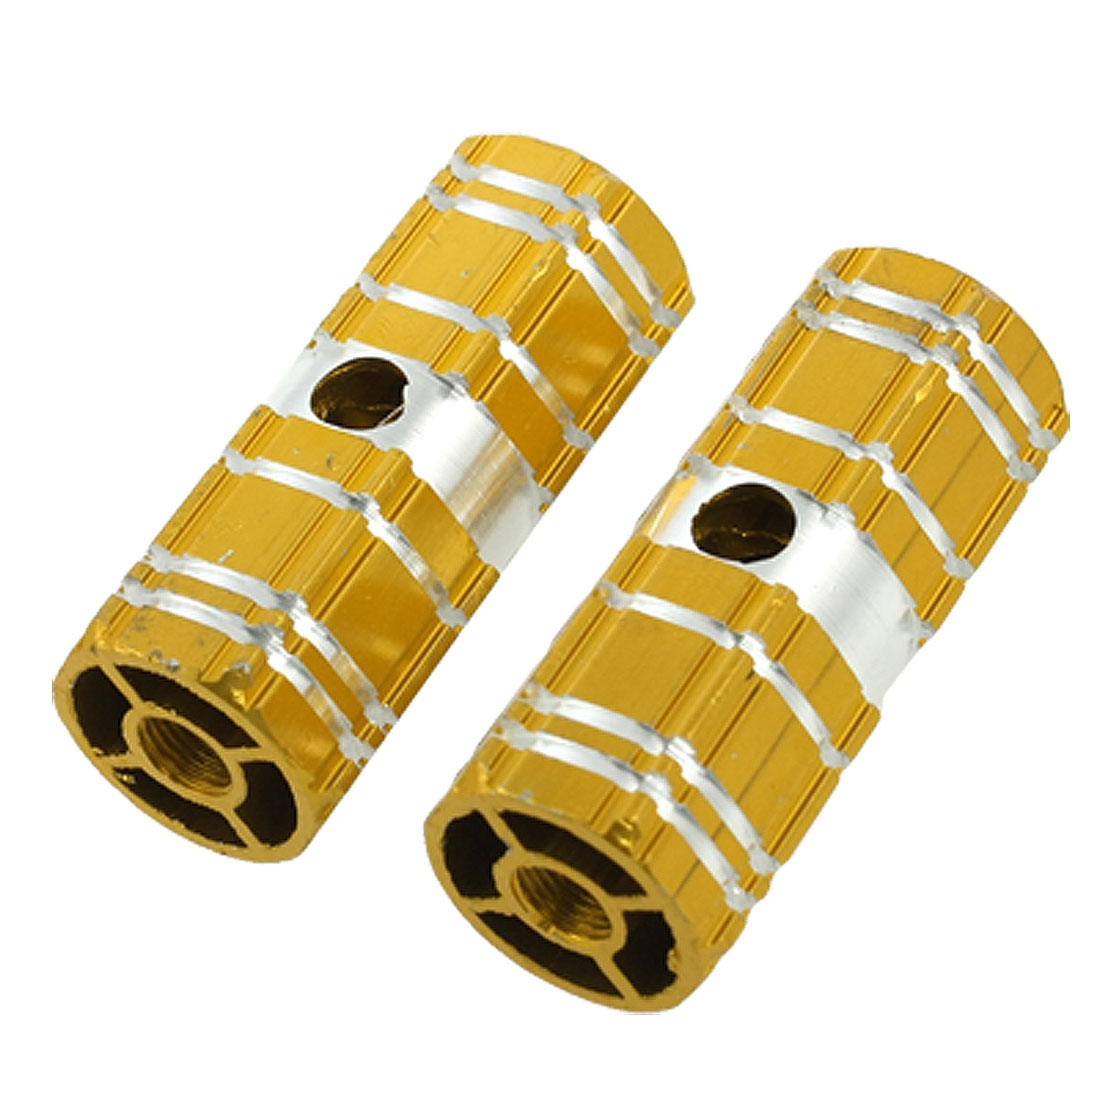 2 Pcs Aluminum Antislip Bicycle Axle Foot Pegs Gold Tone